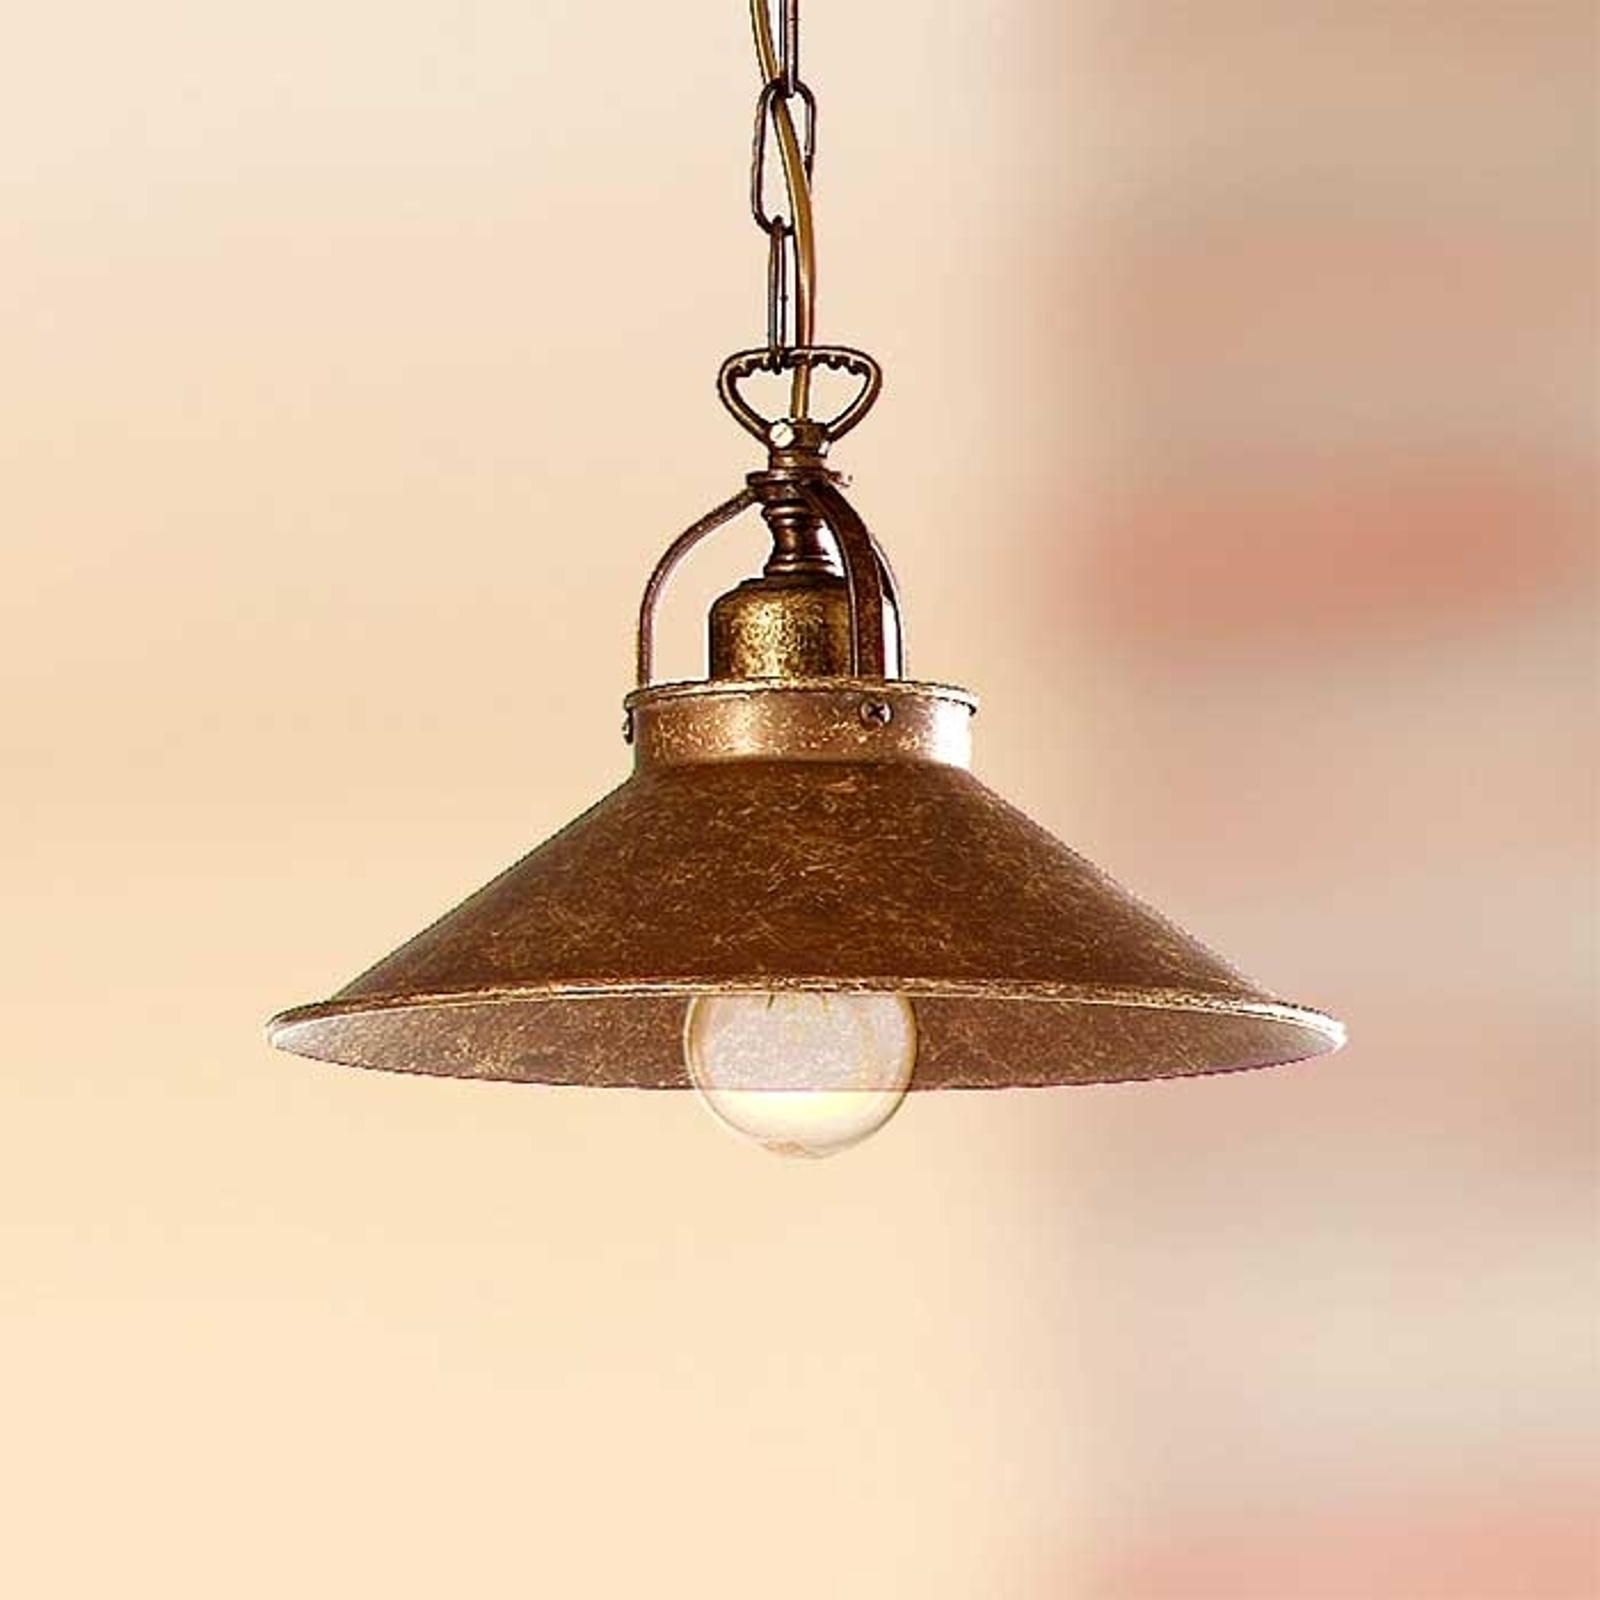 Rustic BRUNO hanging light_2013069_1